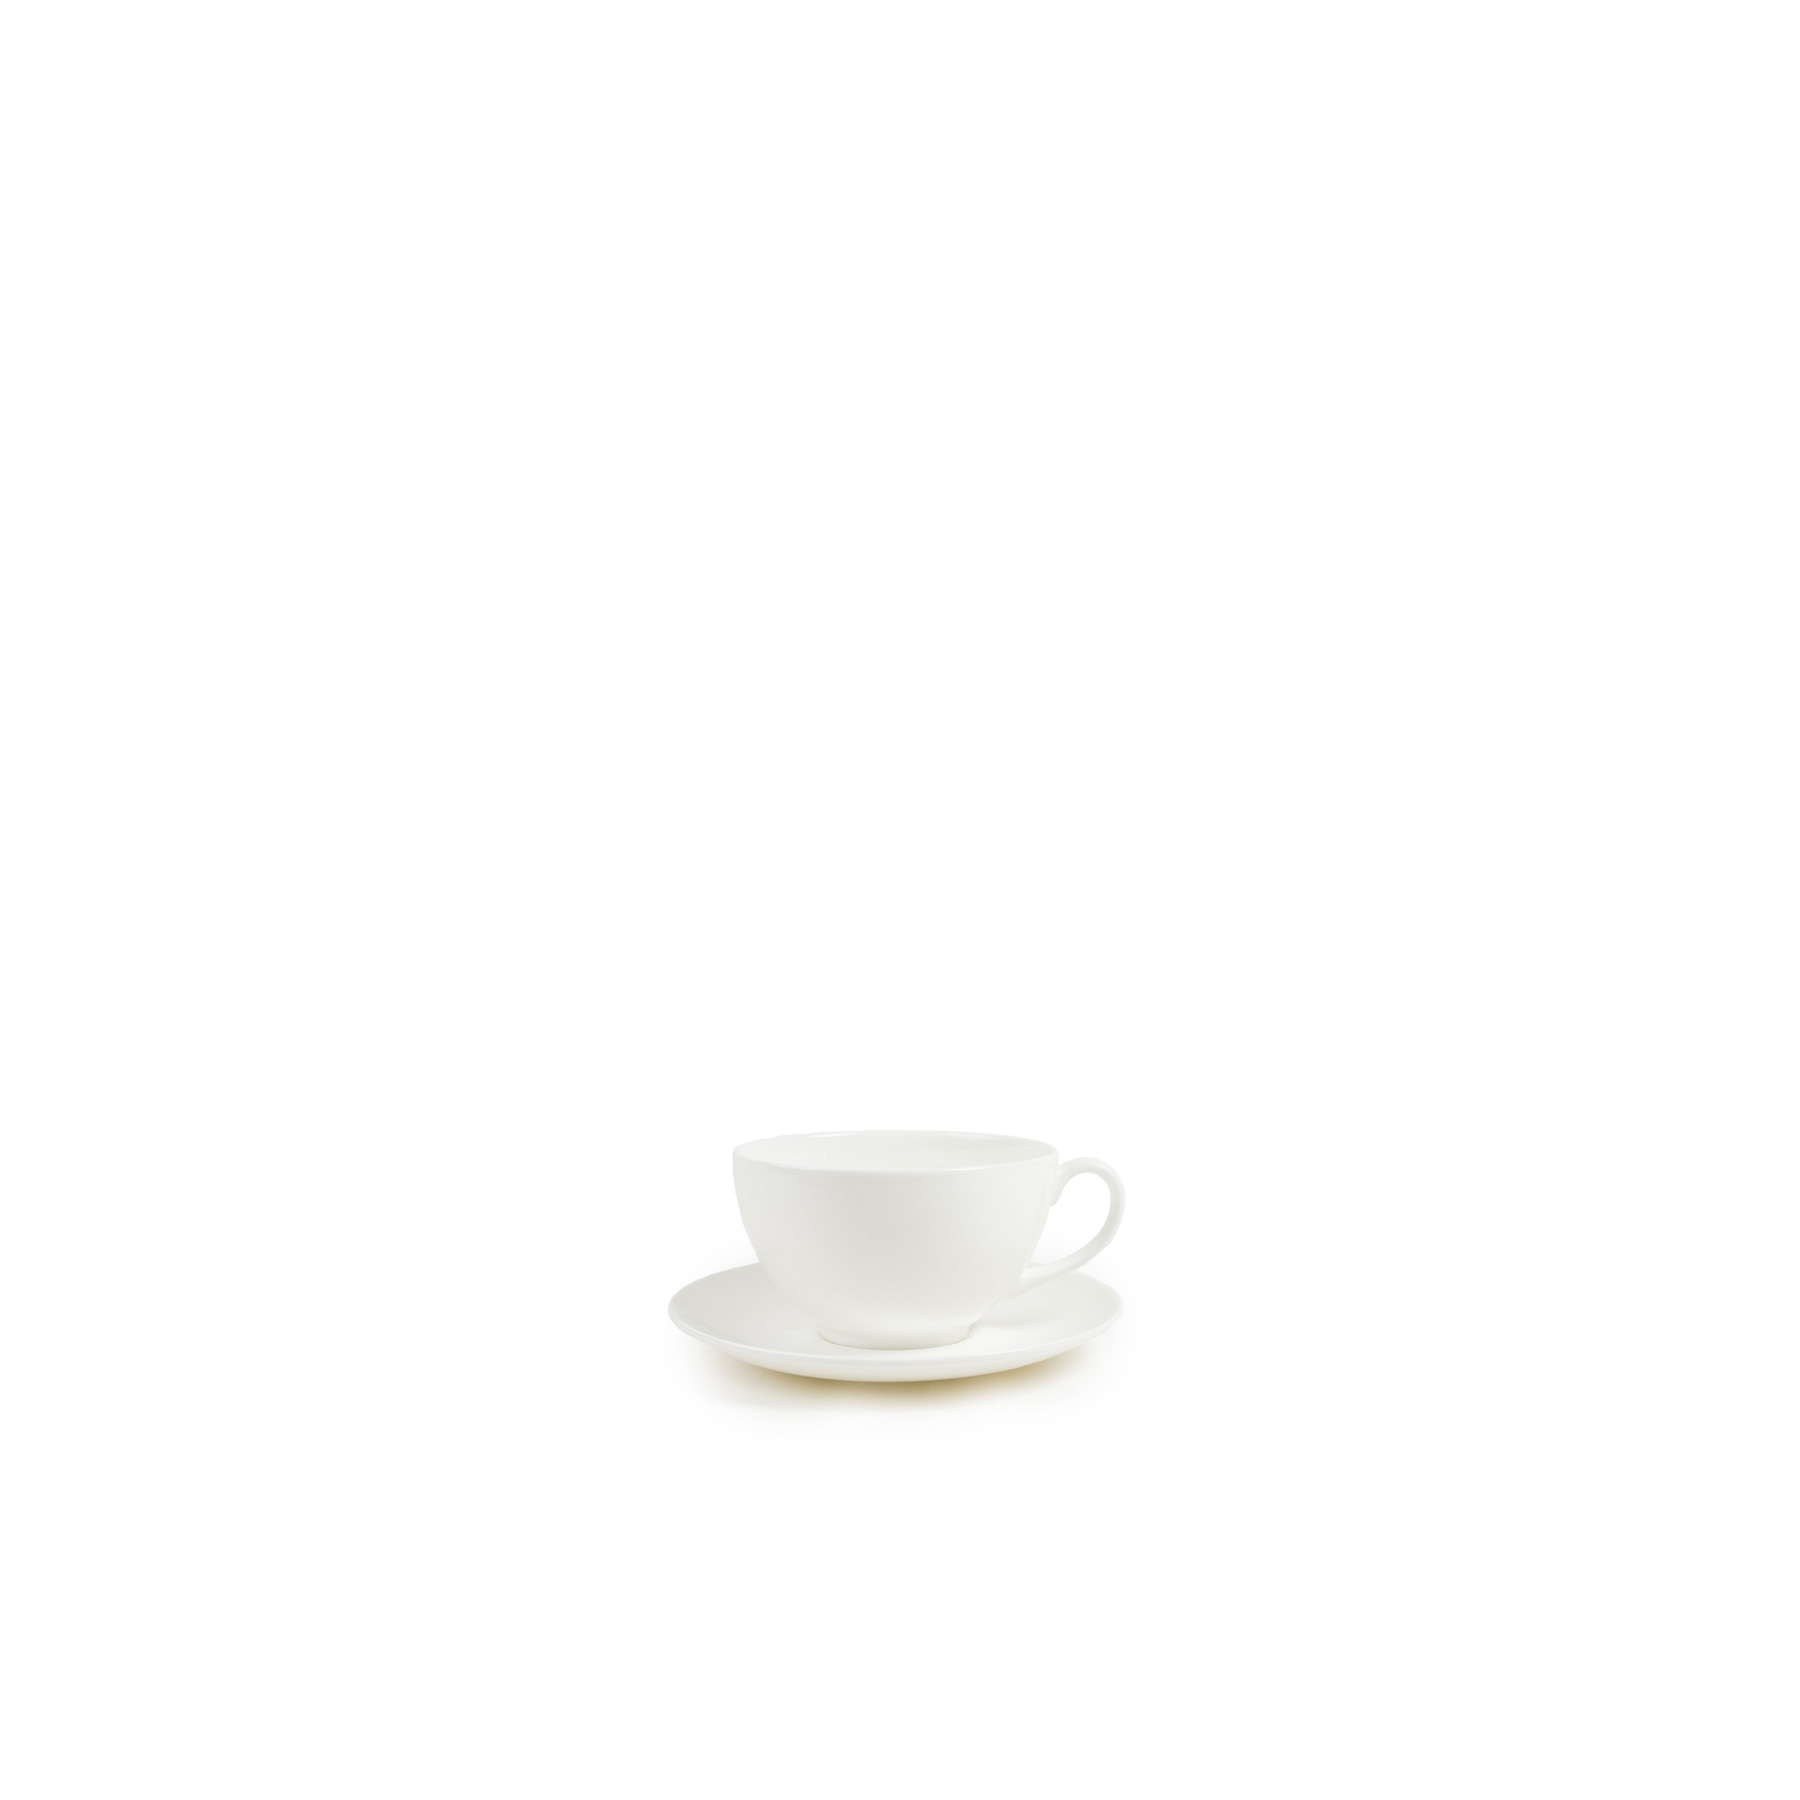 White Cup and Saucer - The purist fine bone china table ware. Designed by Chris Johnson and made in Stoke-on-Trent. This forms the base of all our collections and the most wonderful foundation for any table. Made in England. Microwave and dishwasher safe. | Matter of Stuff